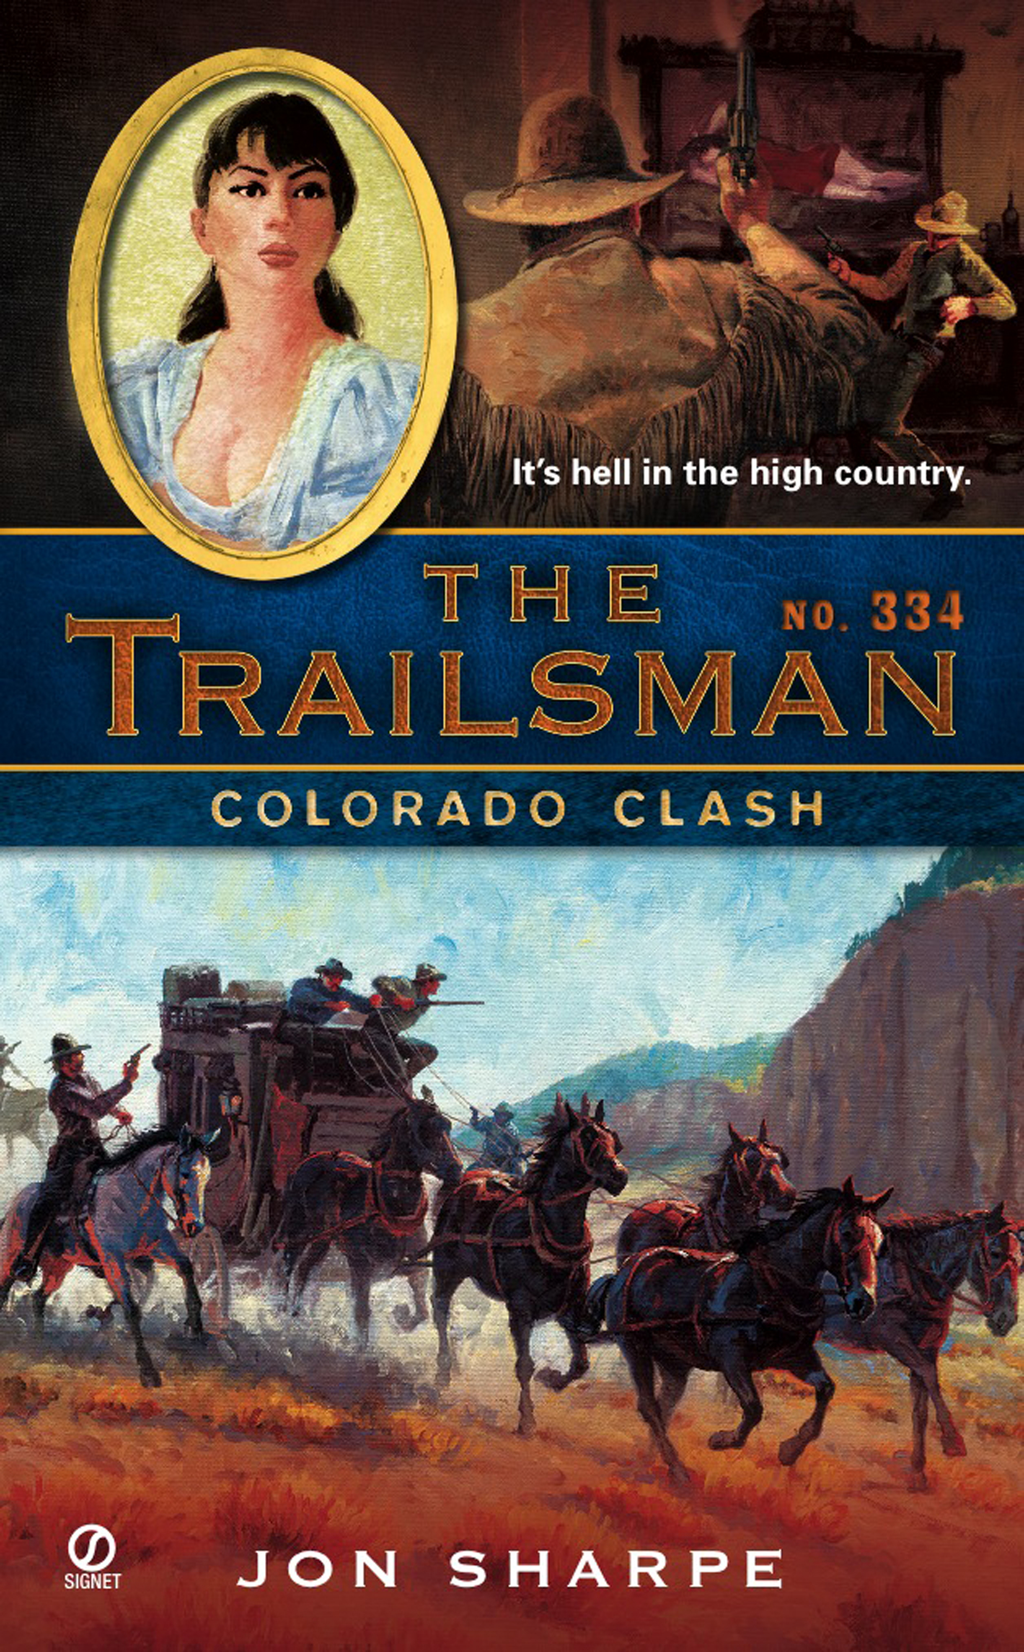 The Trailsman #334